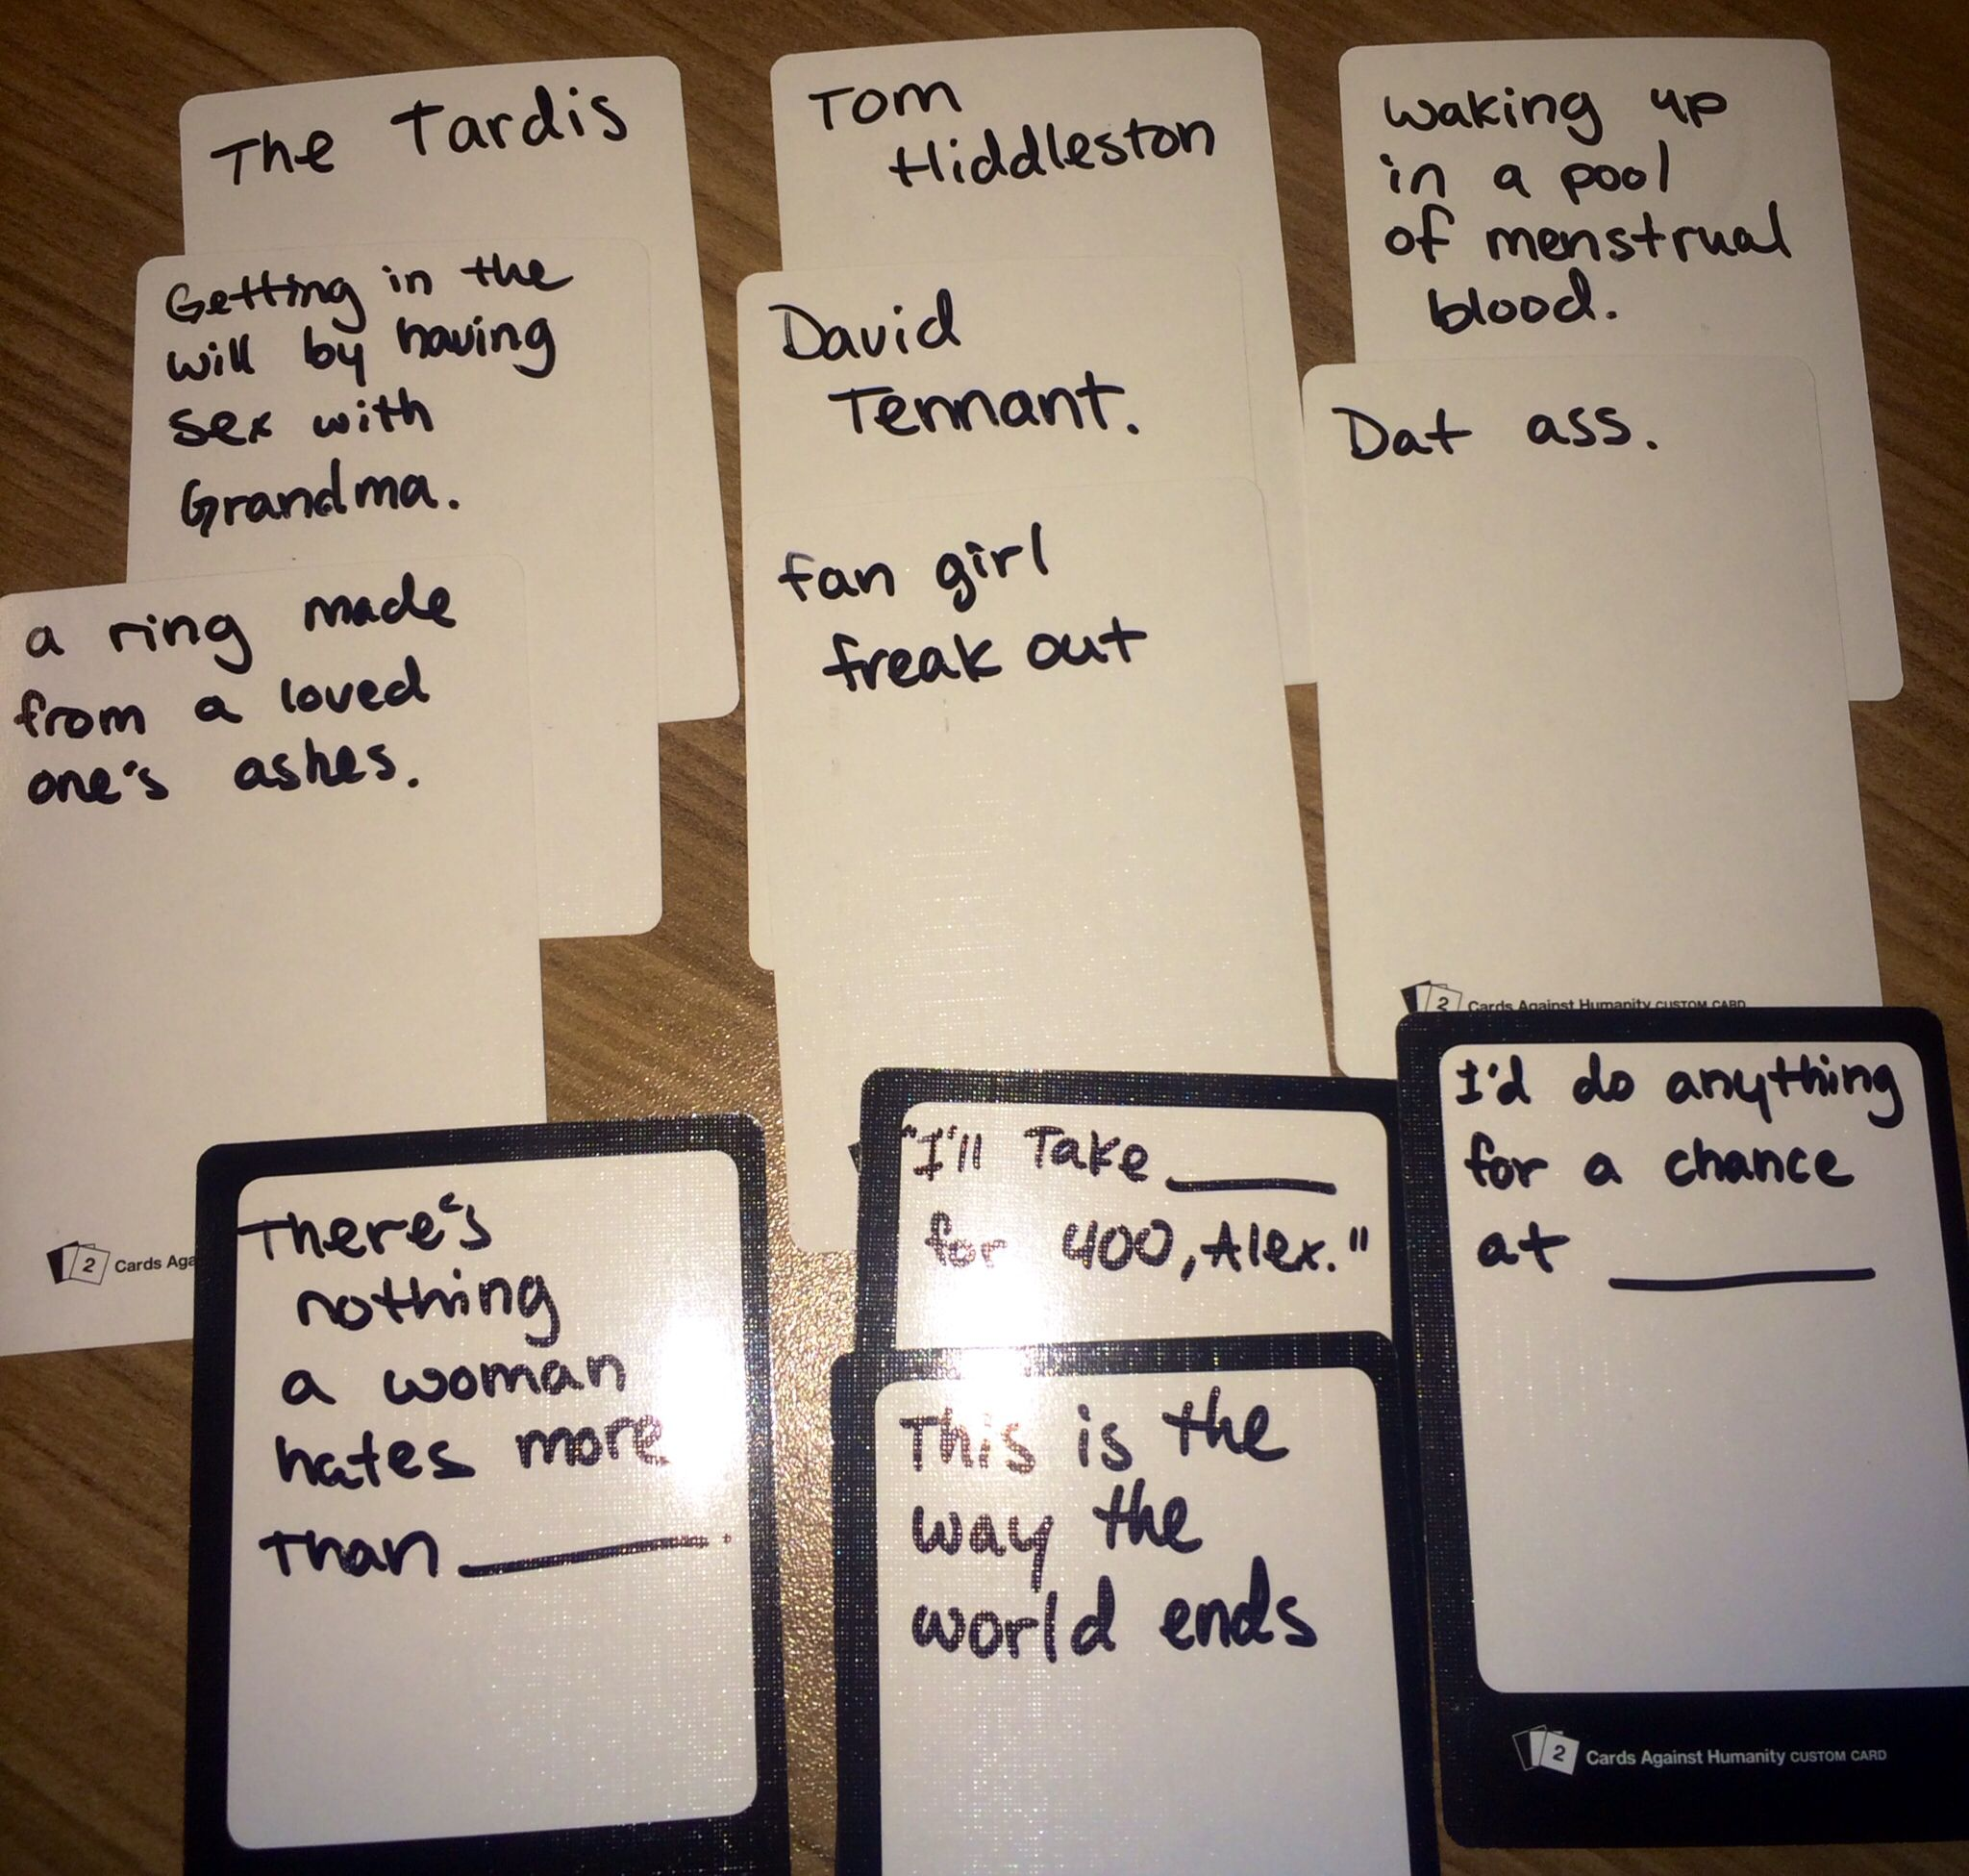 make your own cards against humanity ideas